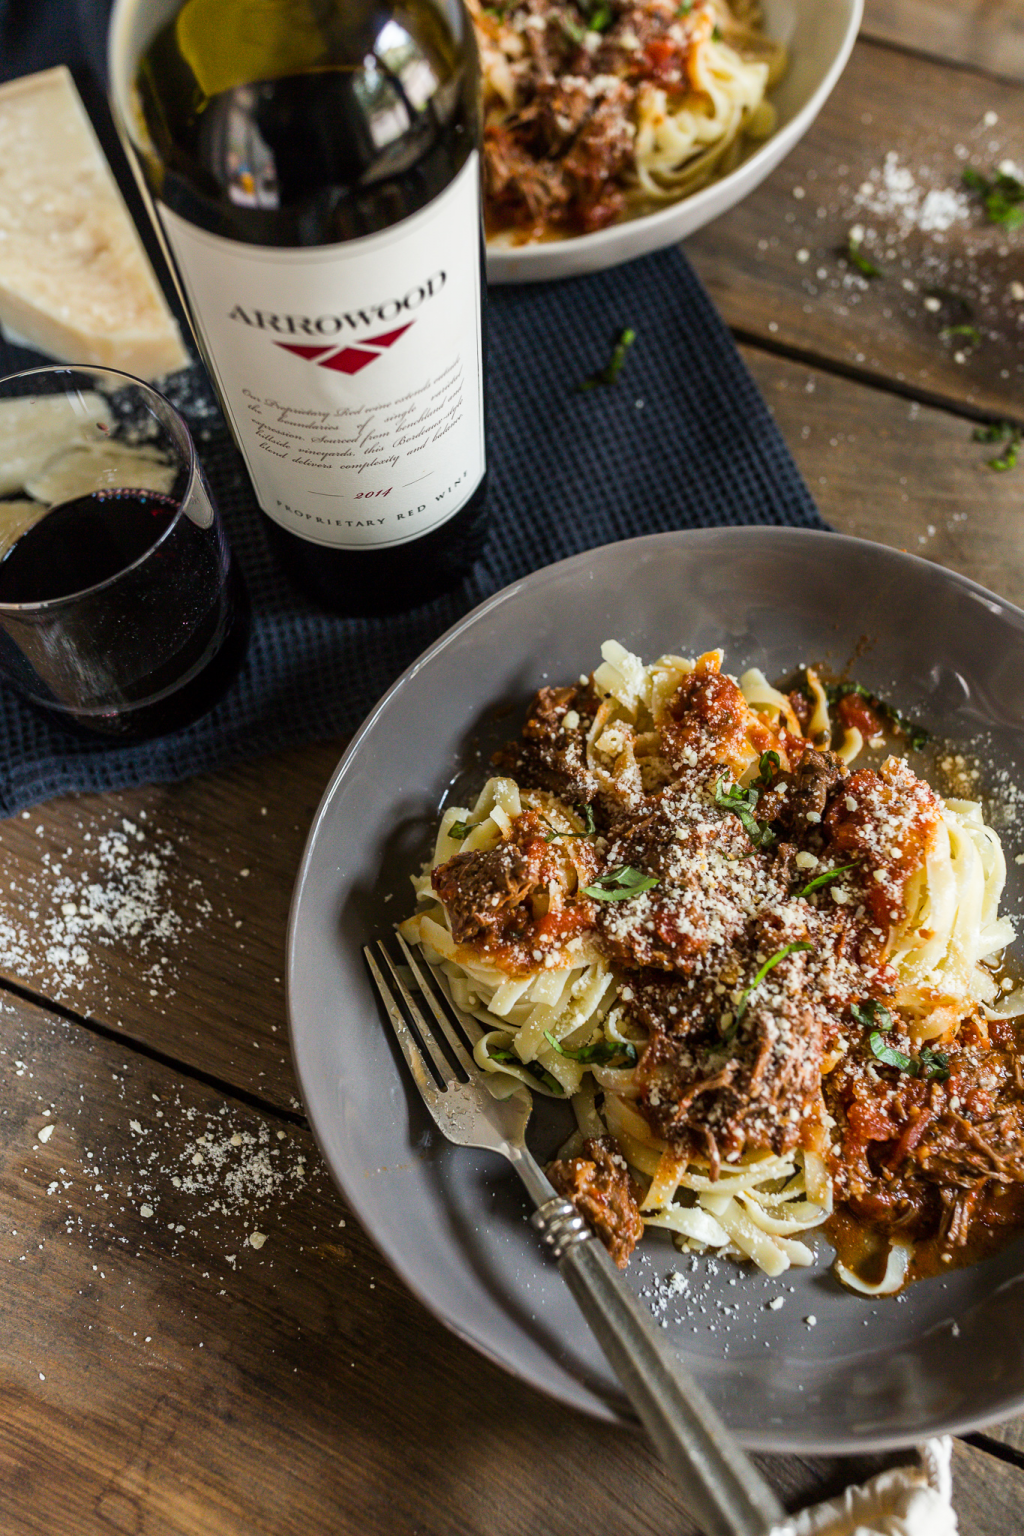 Red Wine Braised Short Rib Ragu Served over Tagliatelle Pasta